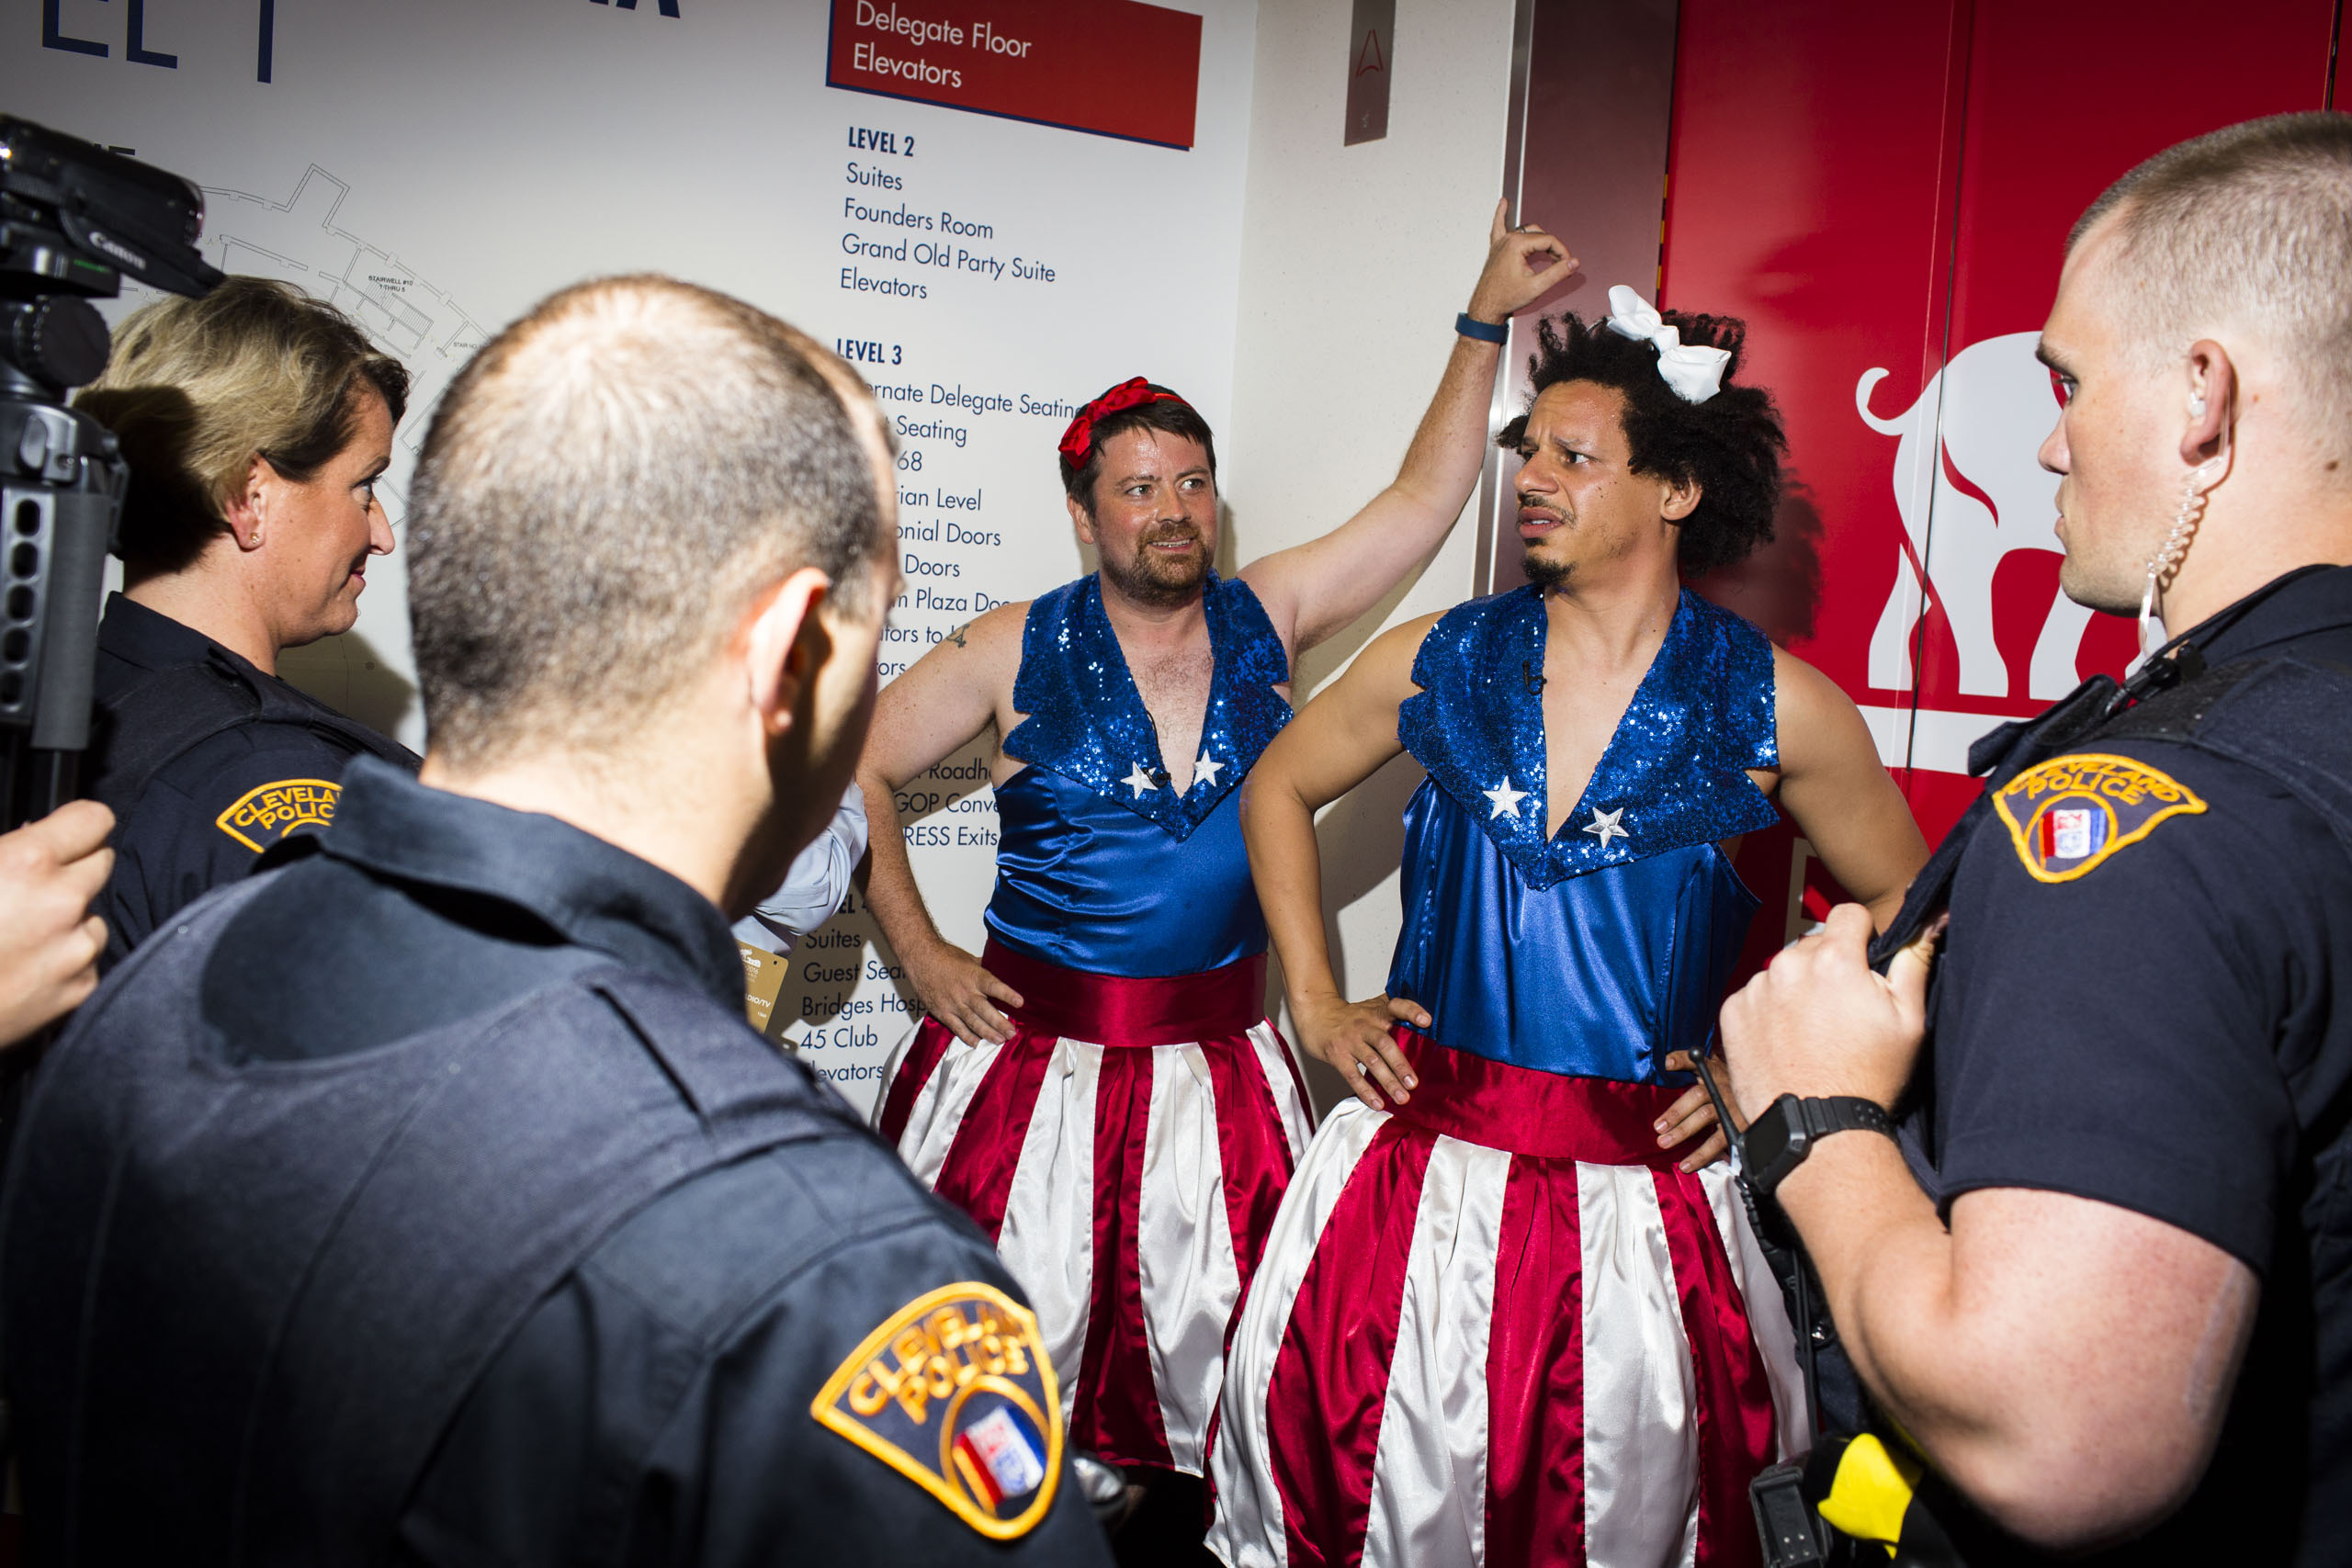 Comedian Eric Andre, dressed as a Trump USA Freedom Kid is questioned by security at the Republican National Convention, July 19, 2016 in Cleveland.